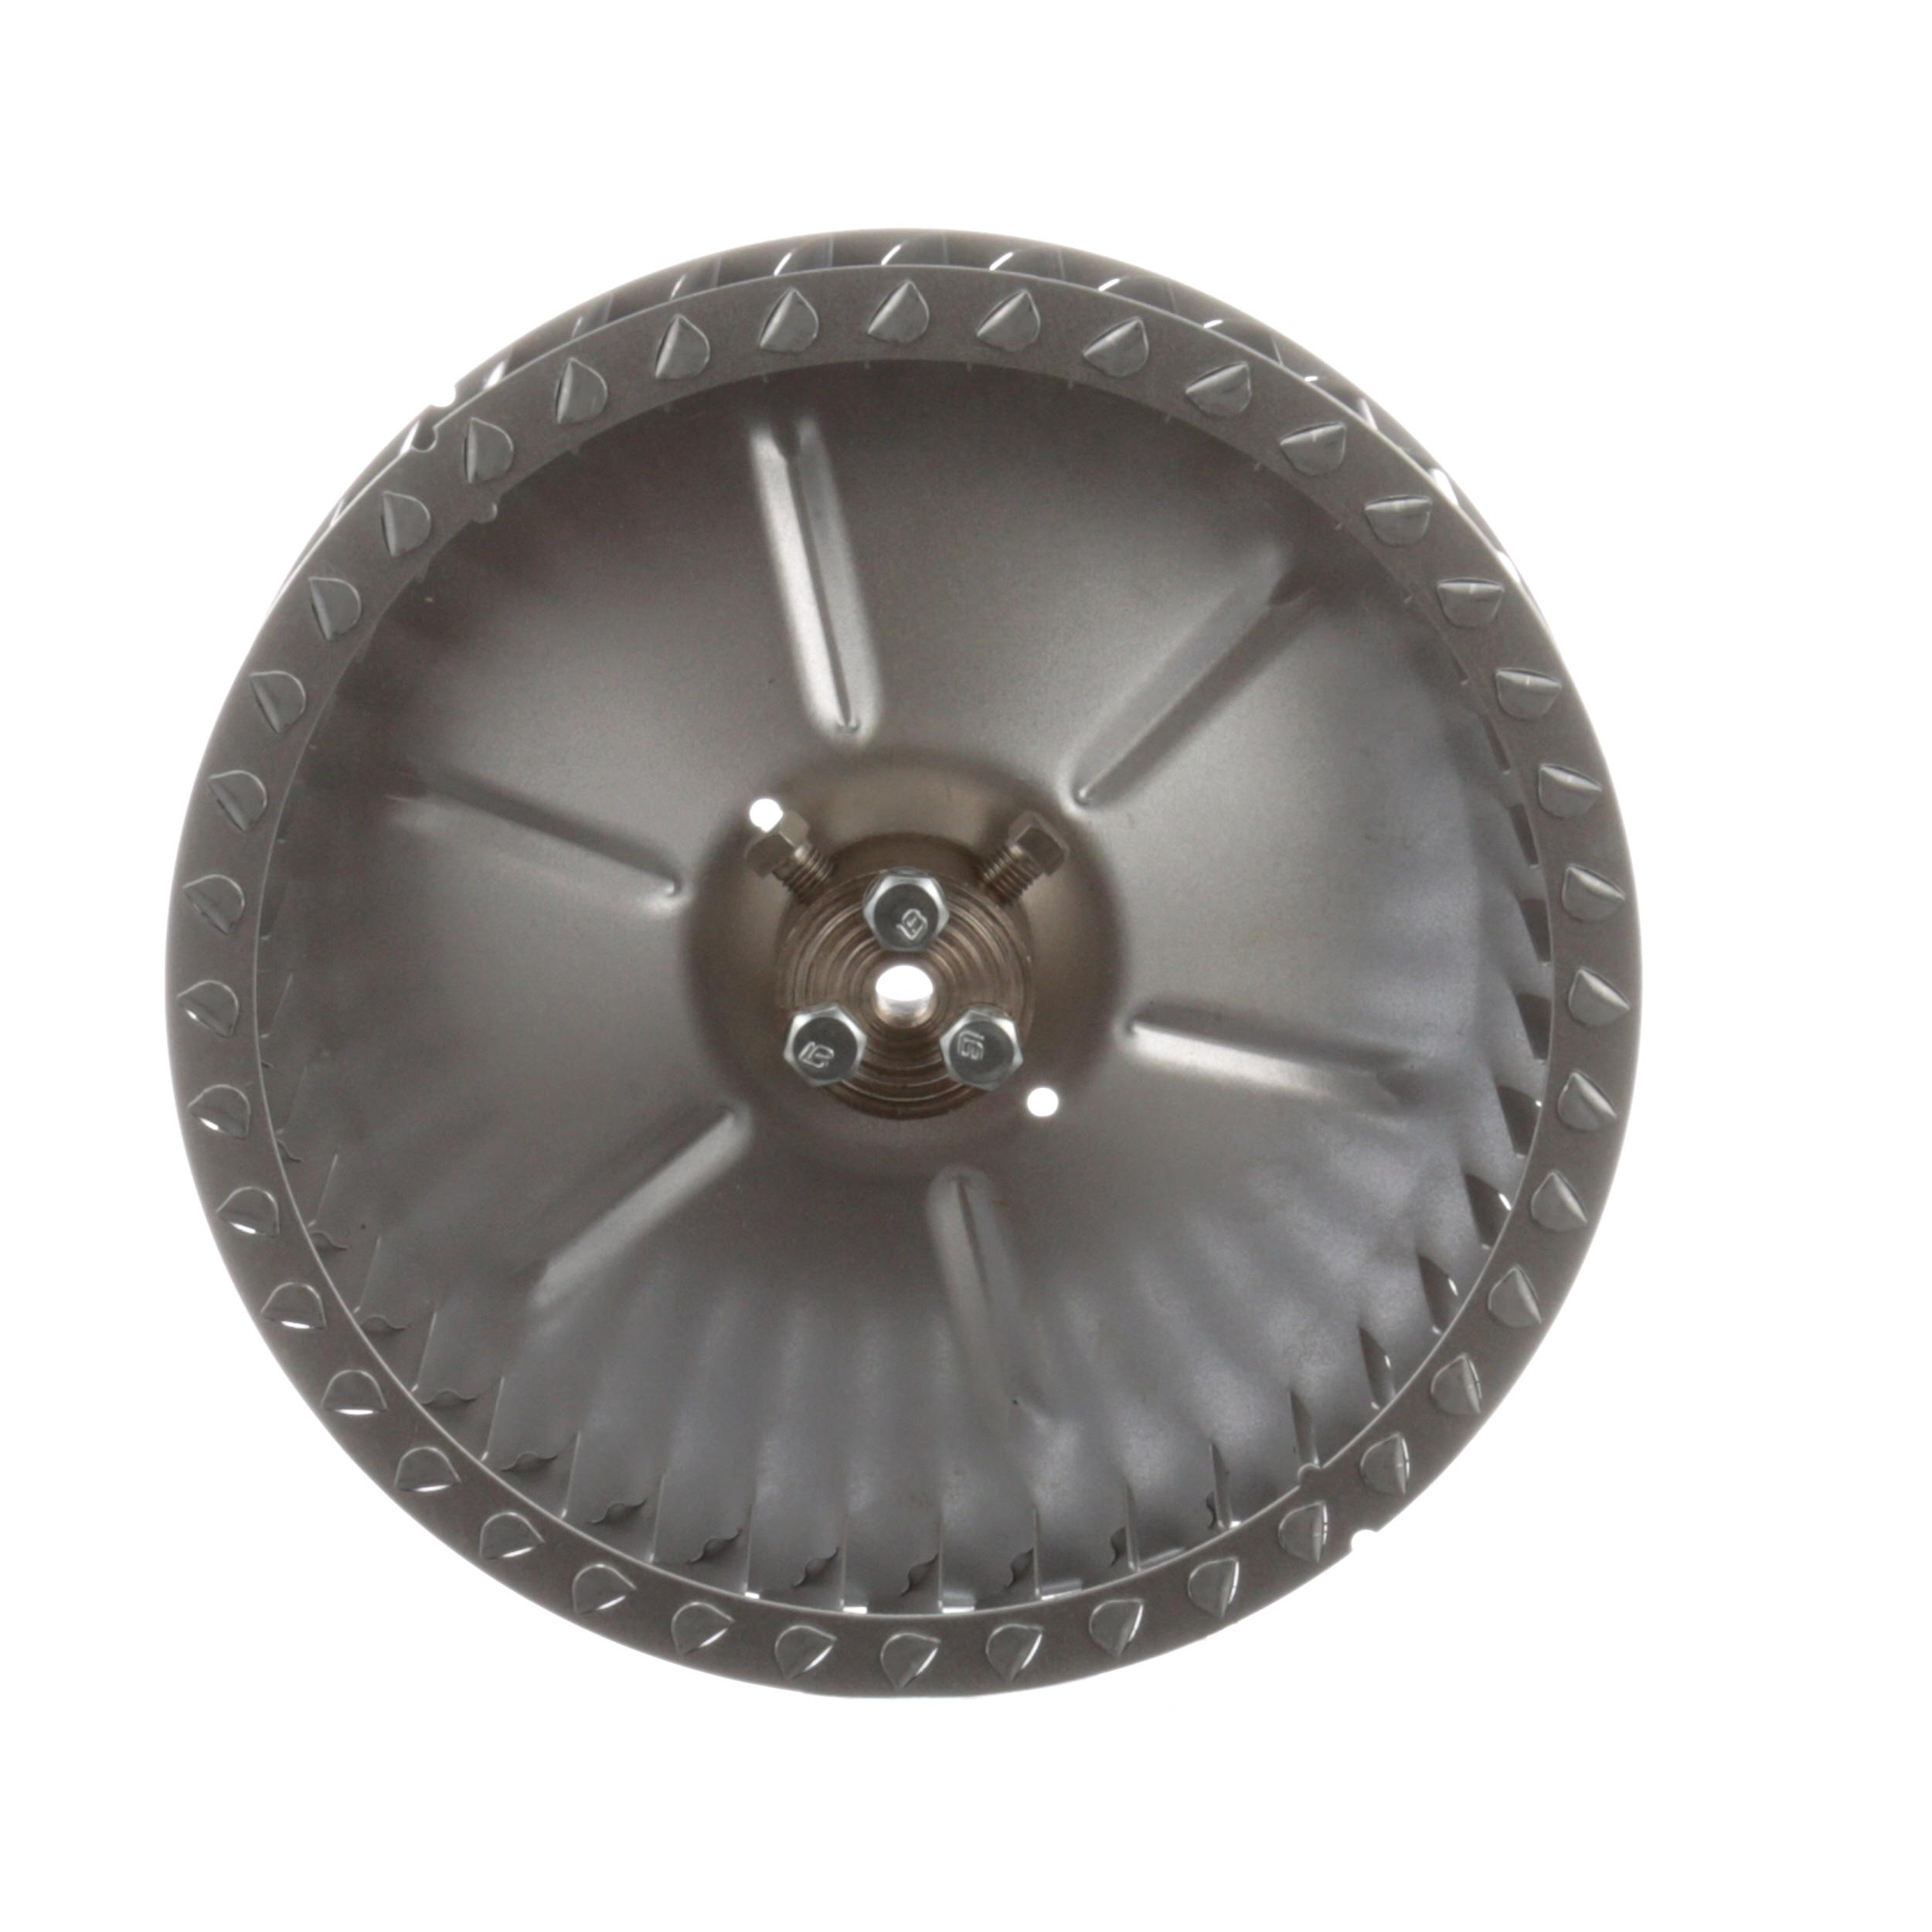 SOUTHBEND BLOWER WHEEL